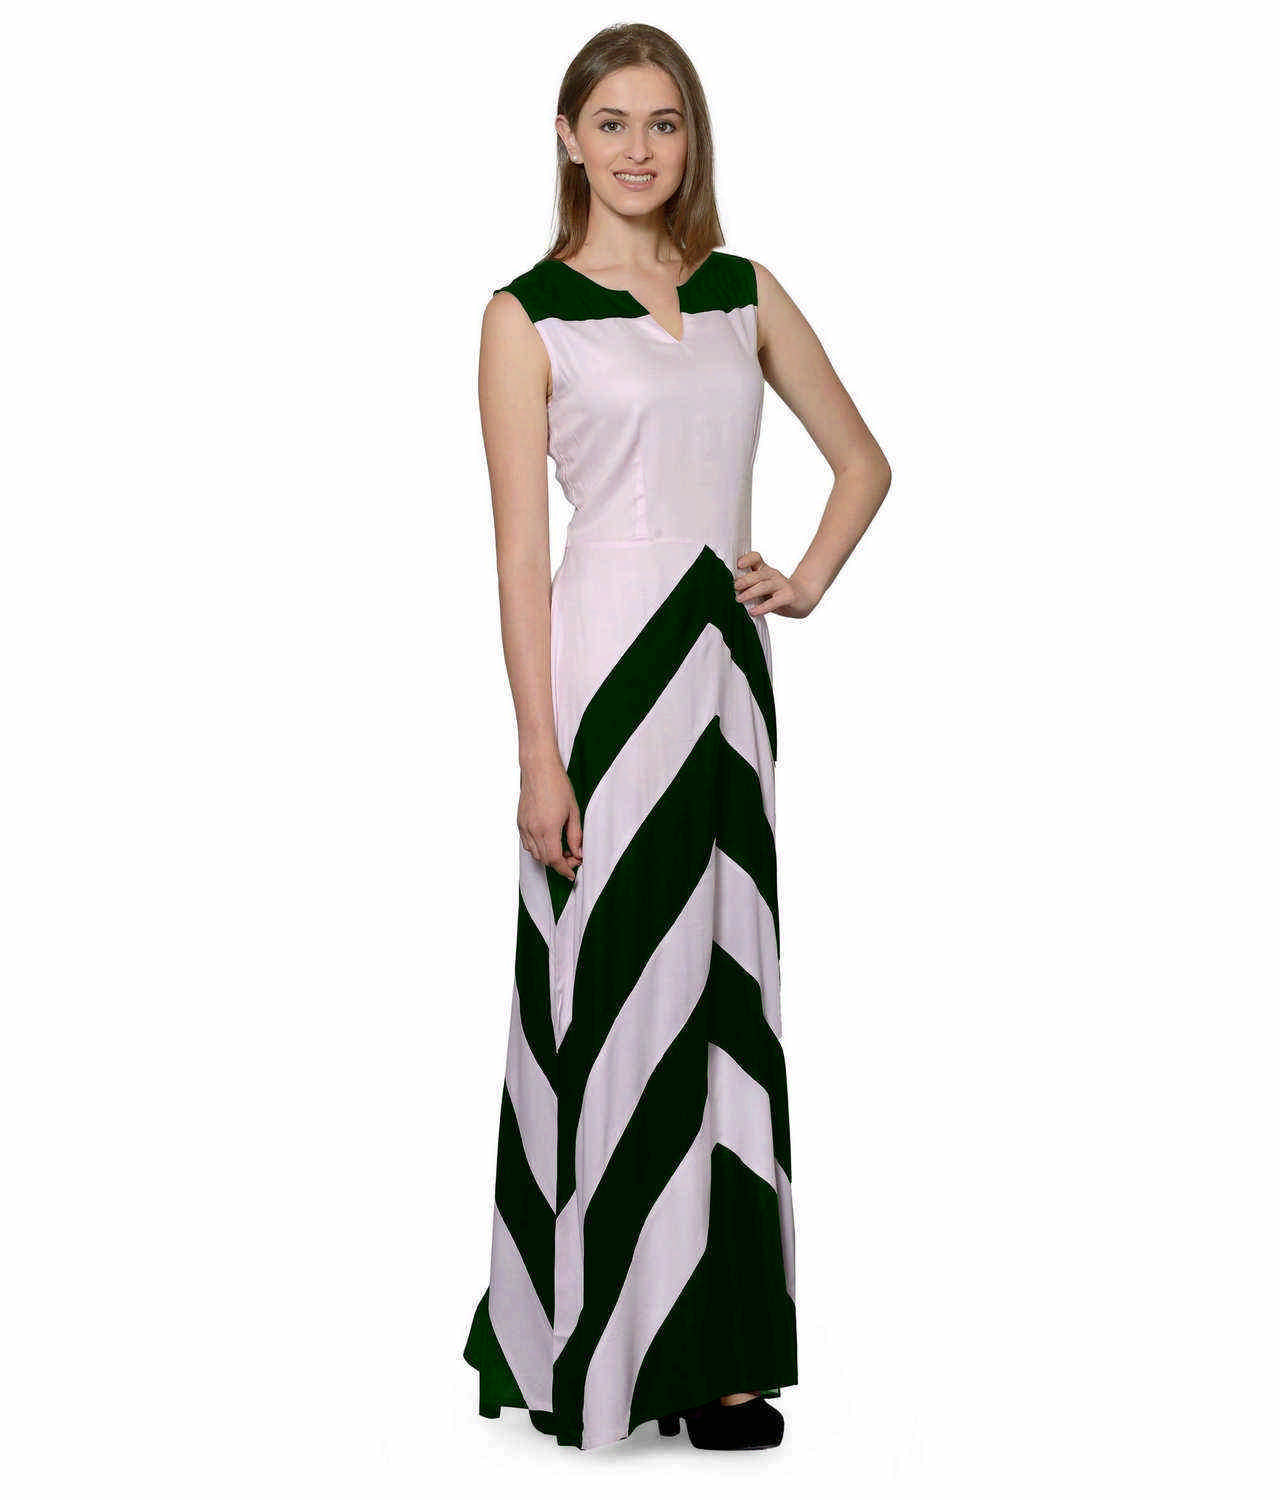 Color Block Empire Slim Fit Maxi Dress in Bottle Green:Baby Pink